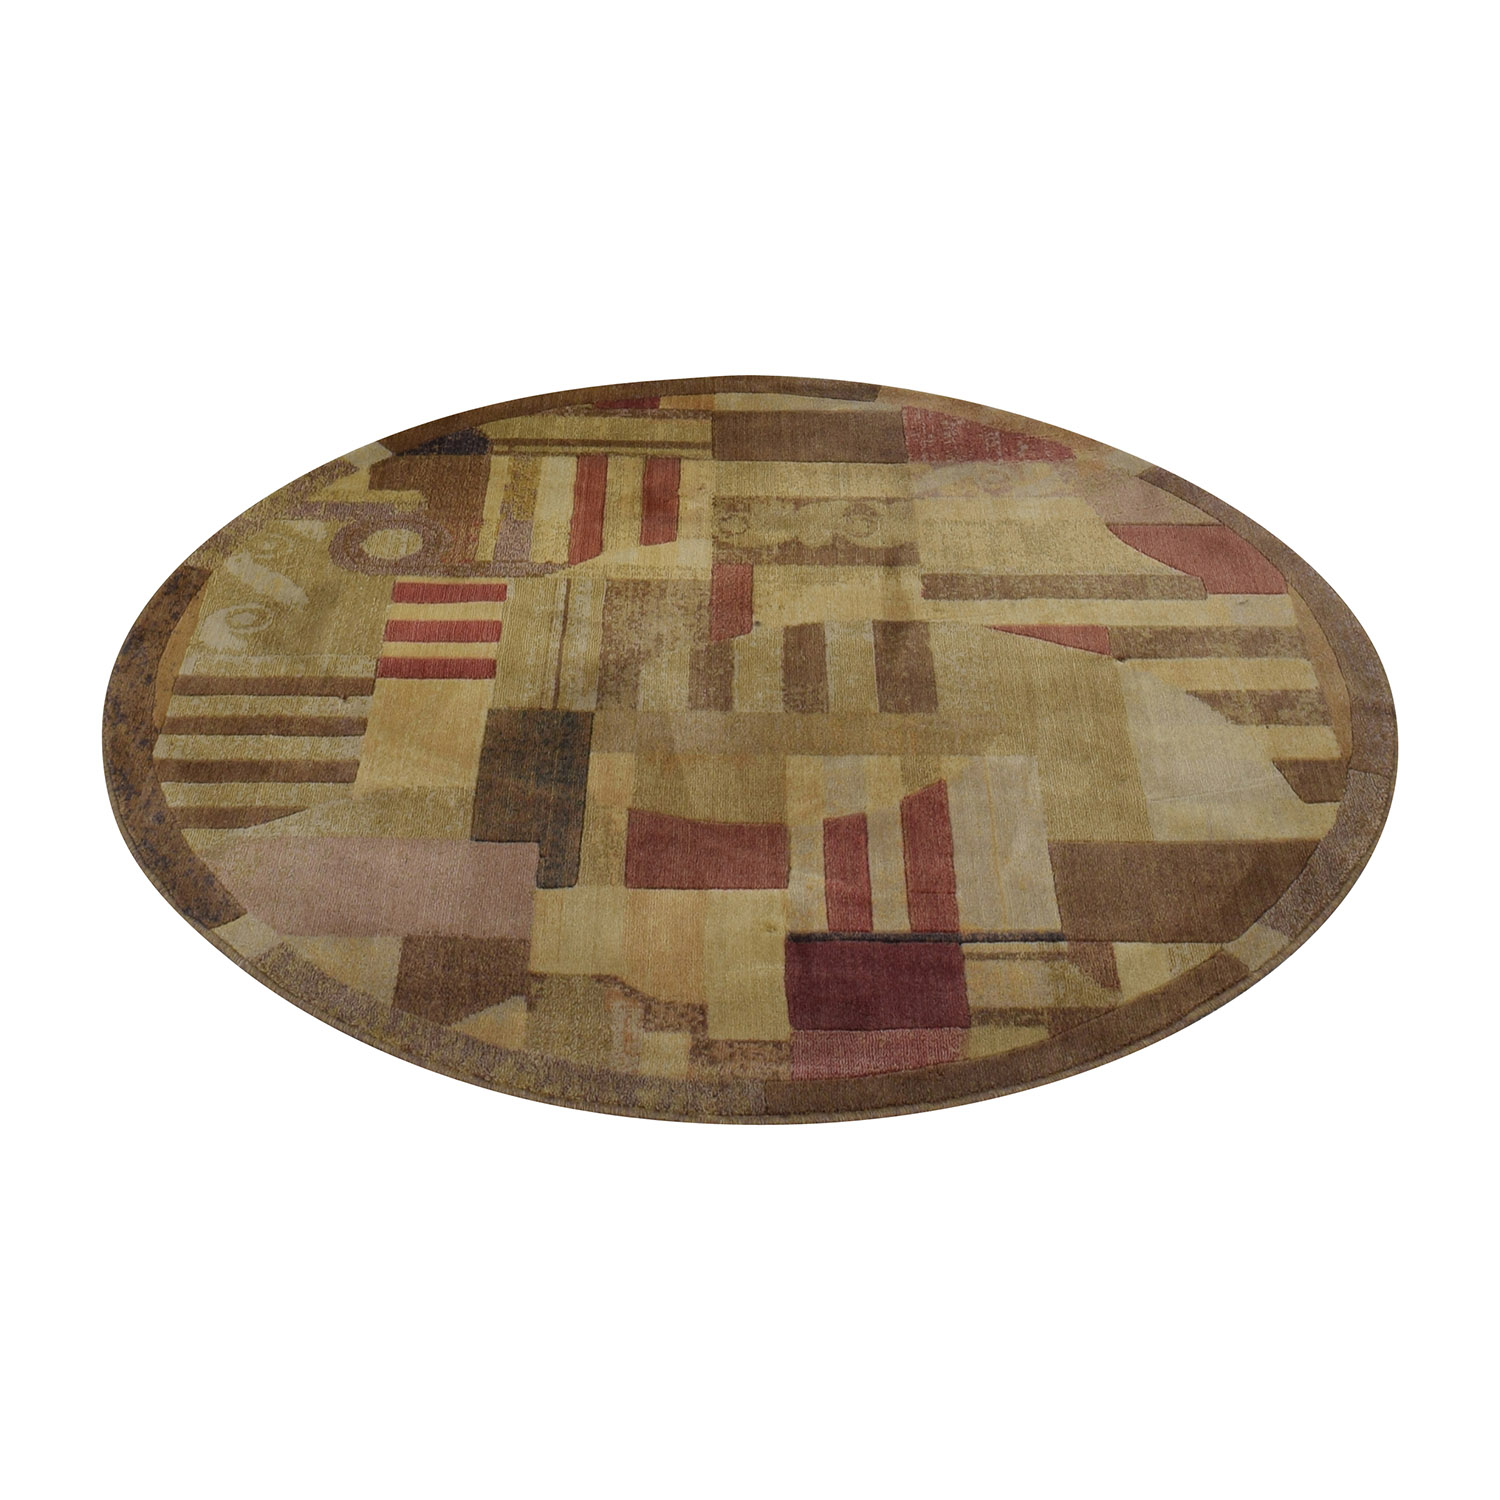 Beige Brown and Red Round Rug / Decor